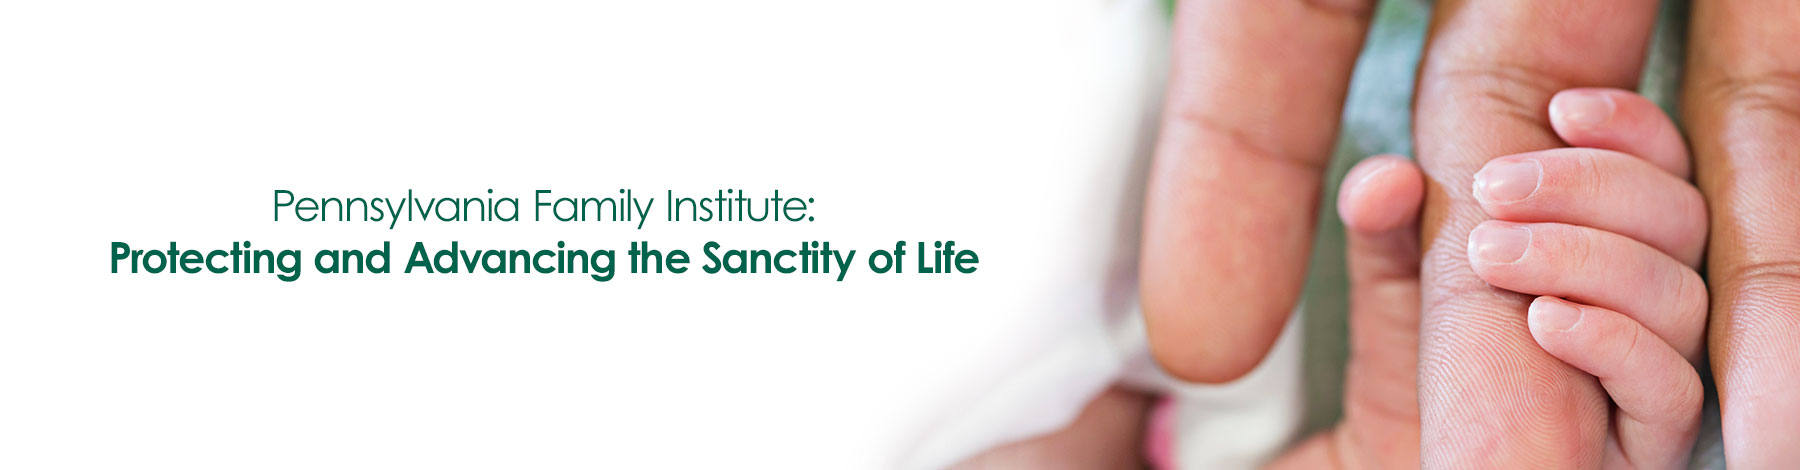 PFI-Protecting-and-Advancing-the-Sanctity-of-Life-4-2-15